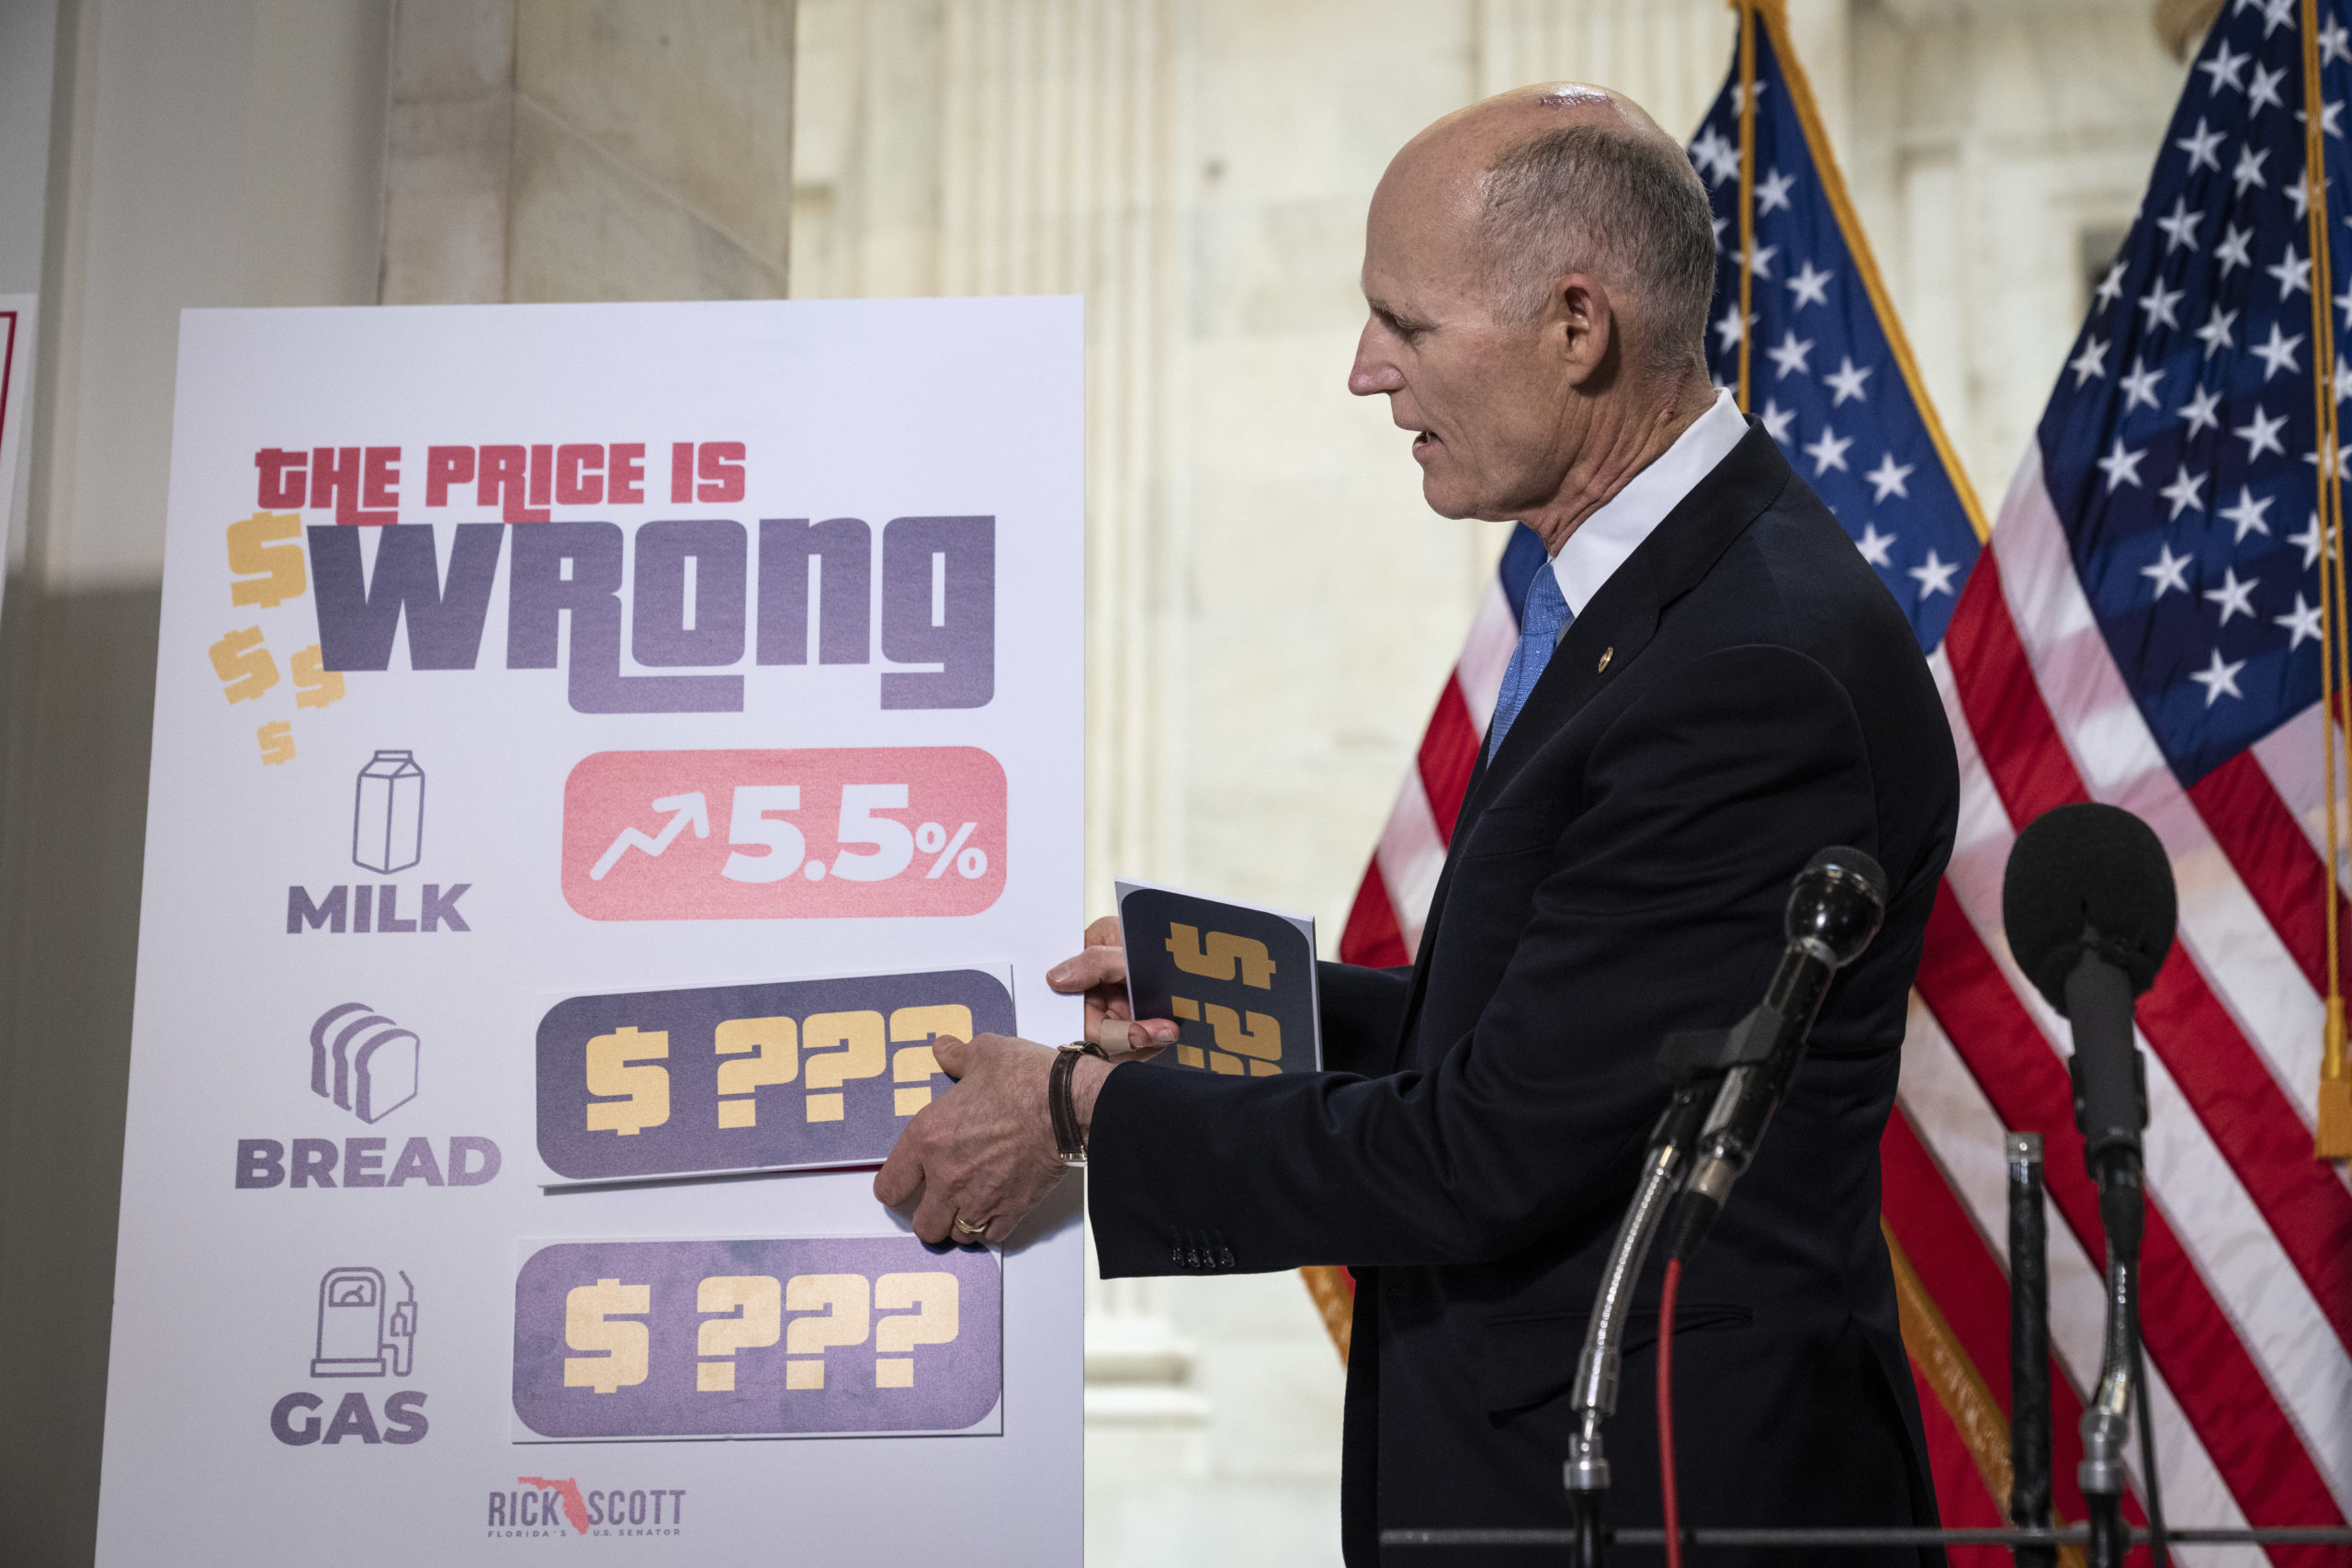 Sen. Rick Scott speaks during a news conference about inflation on May 26. (Drew Angerer/Getty Images)